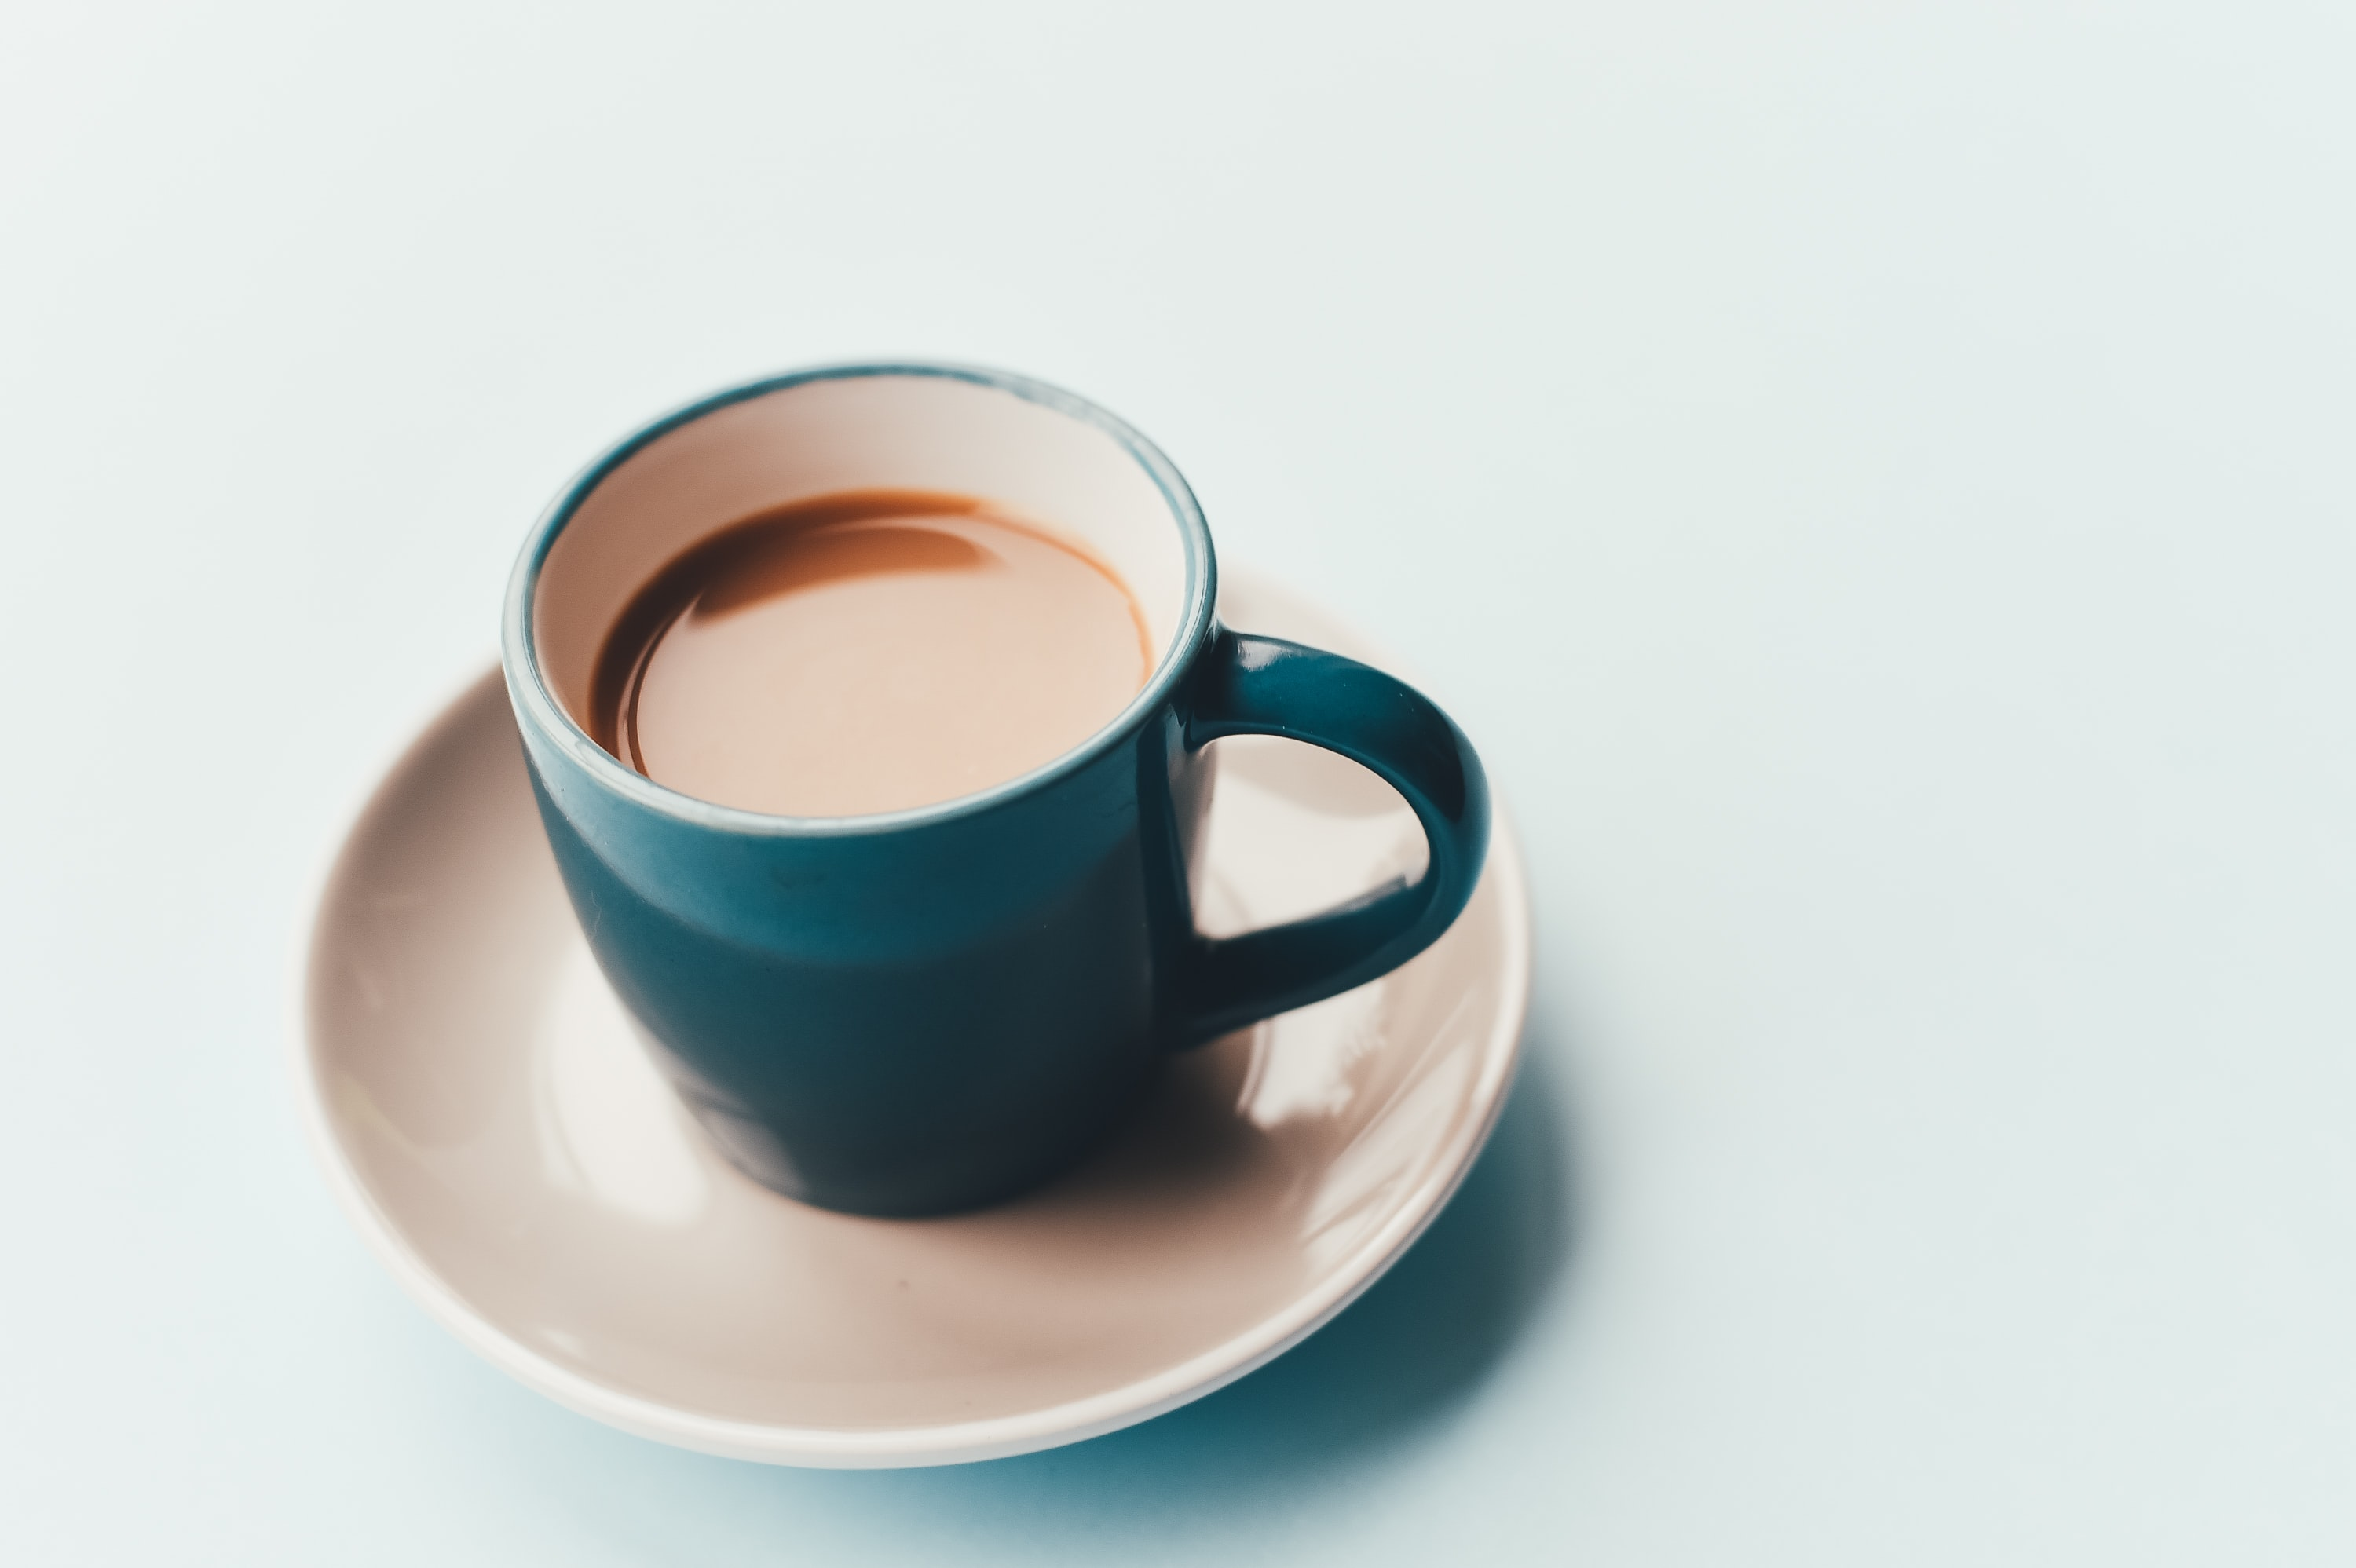 A blue cup with coffee on a white saucer